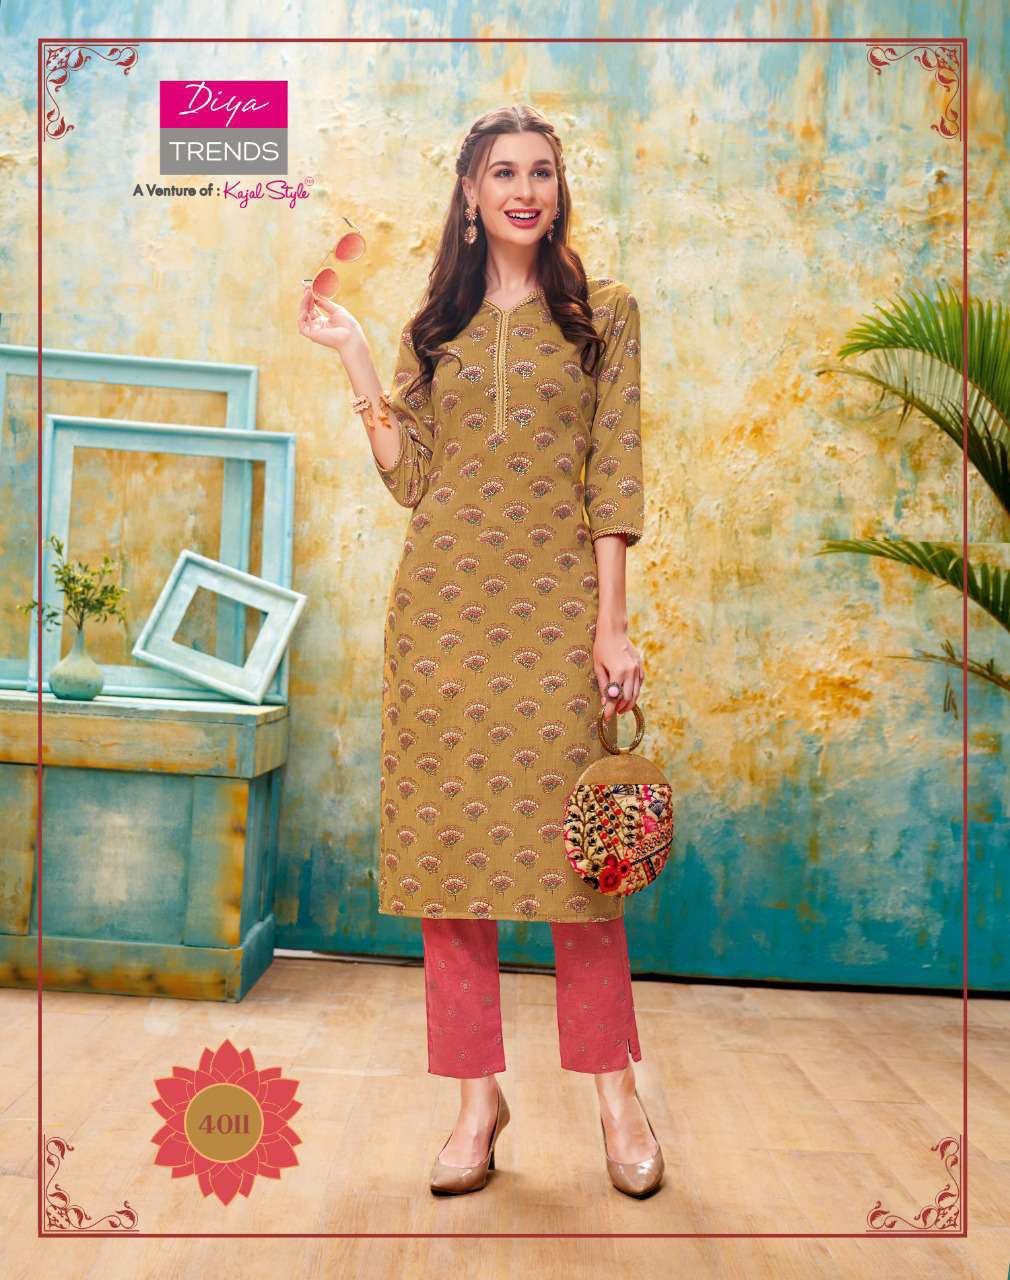 Diya Trends Forever Vol 4 by Kajal Style Kurti with Pant Wholesale Catalog 12 Pcs 12 - Diya Trends Forever Vol 4 by Kajal Style Kurti with Pant Wholesale Catalog 12 Pcs